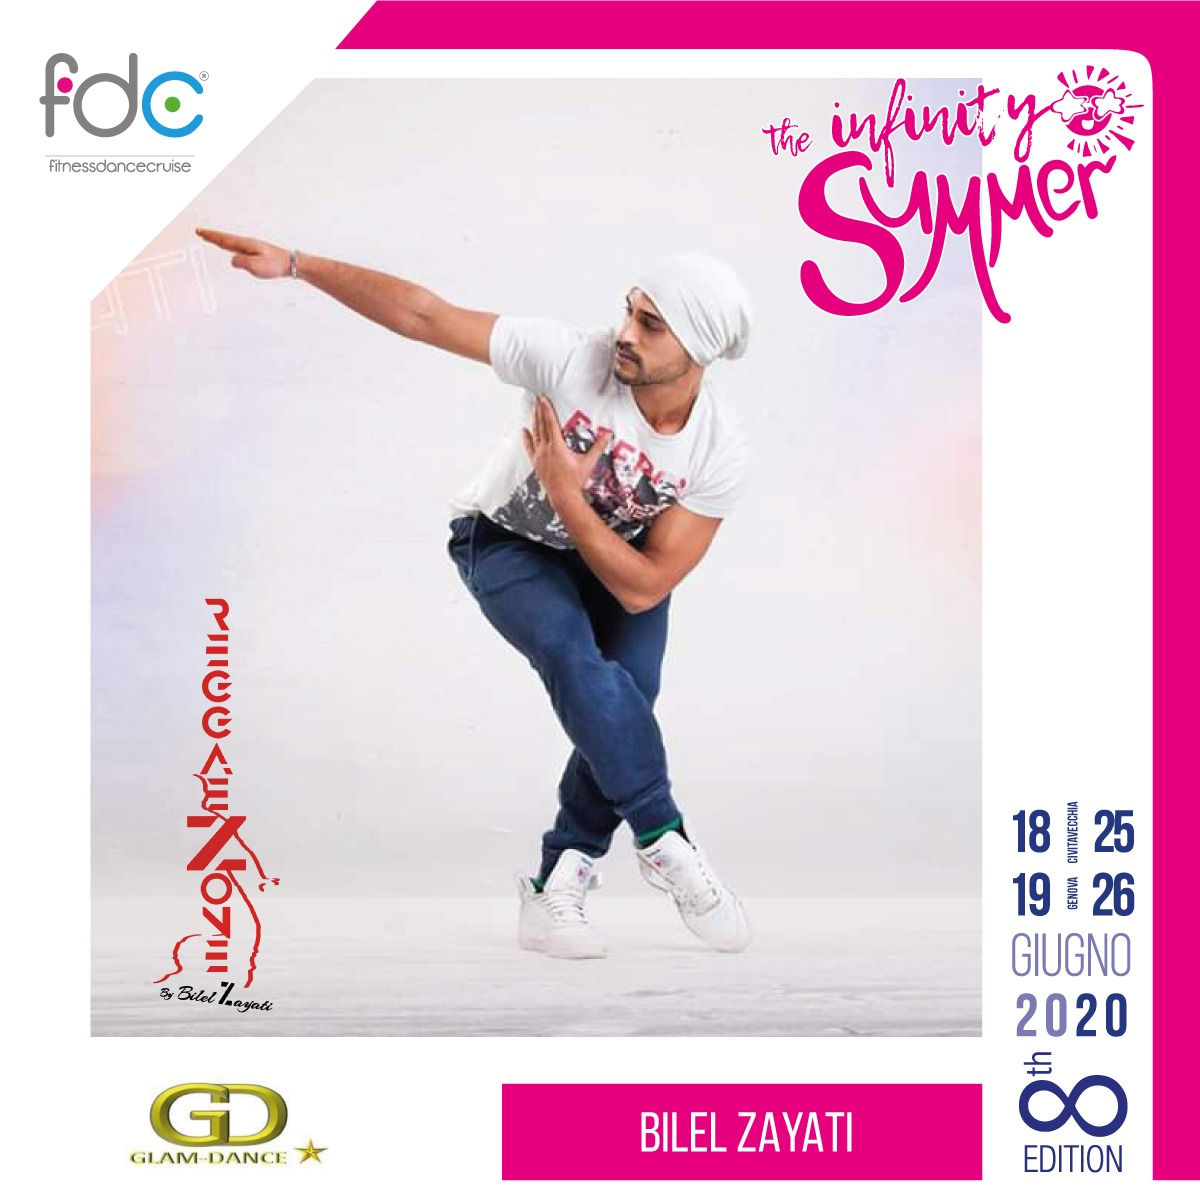 Glam Dance FDC Presenter Bilel Zayati